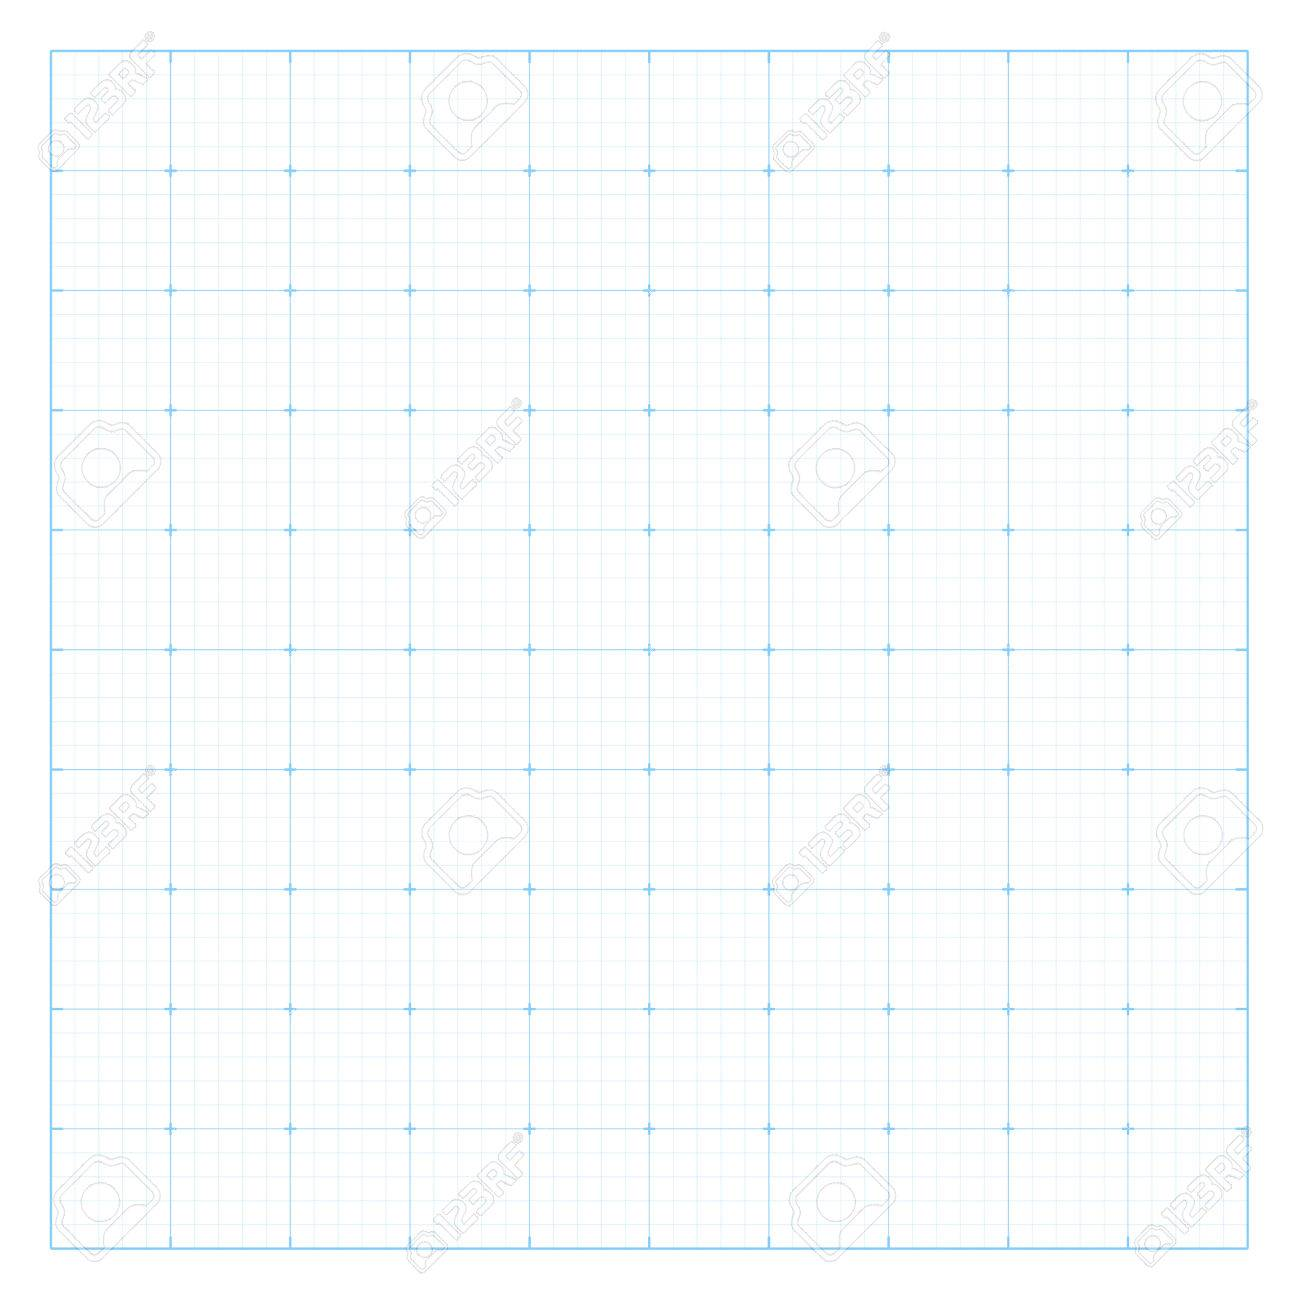 Paper blueprint background drawing paper for architectural paper blueprint background drawing paper for architectural engineering design work vector stock vector malvernweather